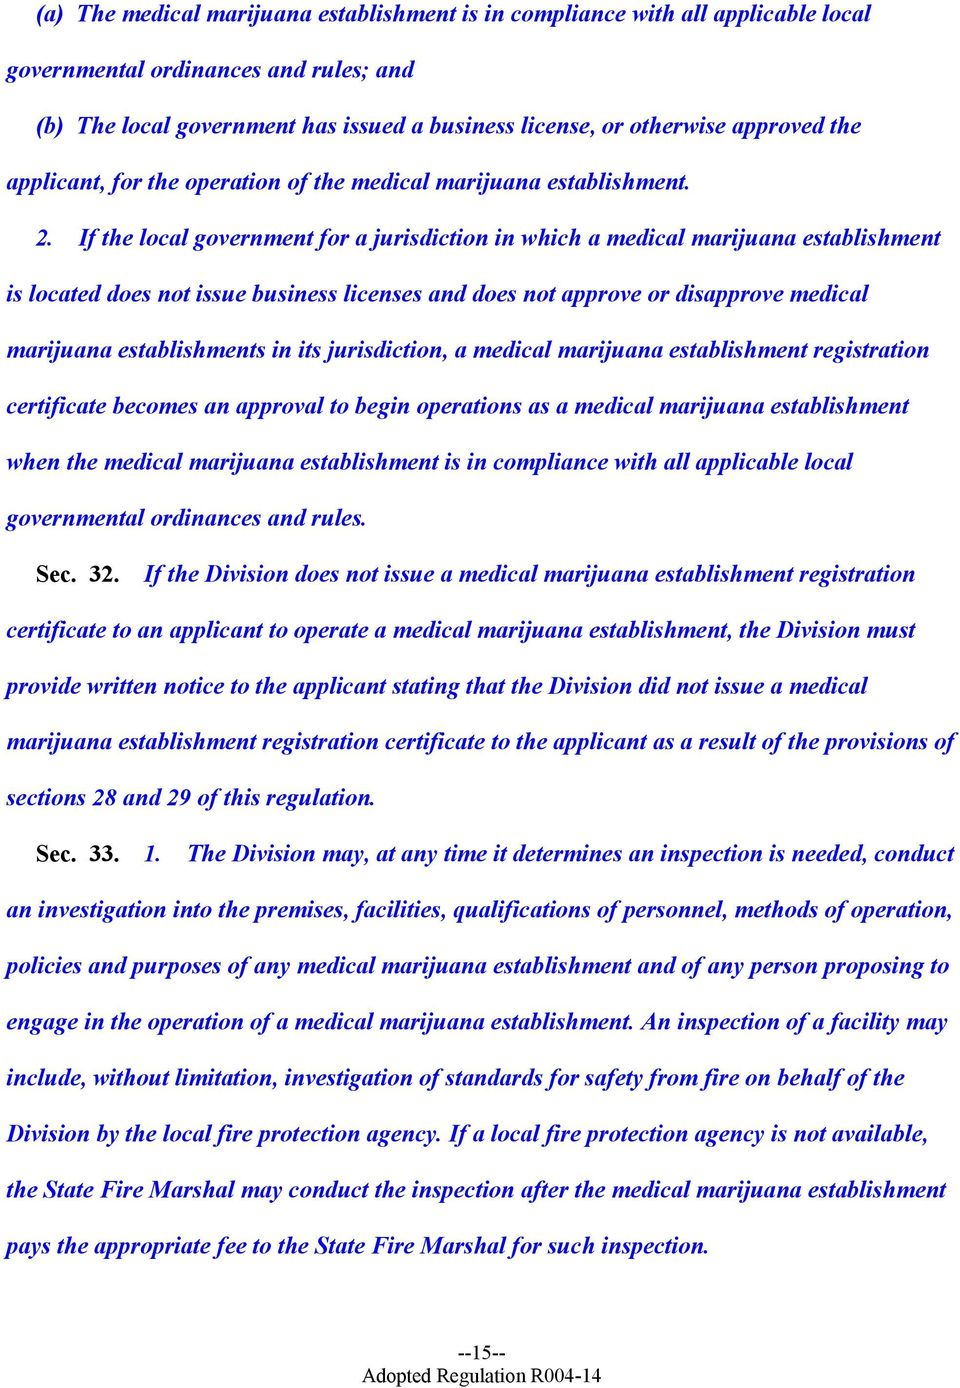 If the local government for a jurisdiction in which a medical marijuana establishment is located does not issue business licenses and does not approve or disapprove medical marijuana establishments